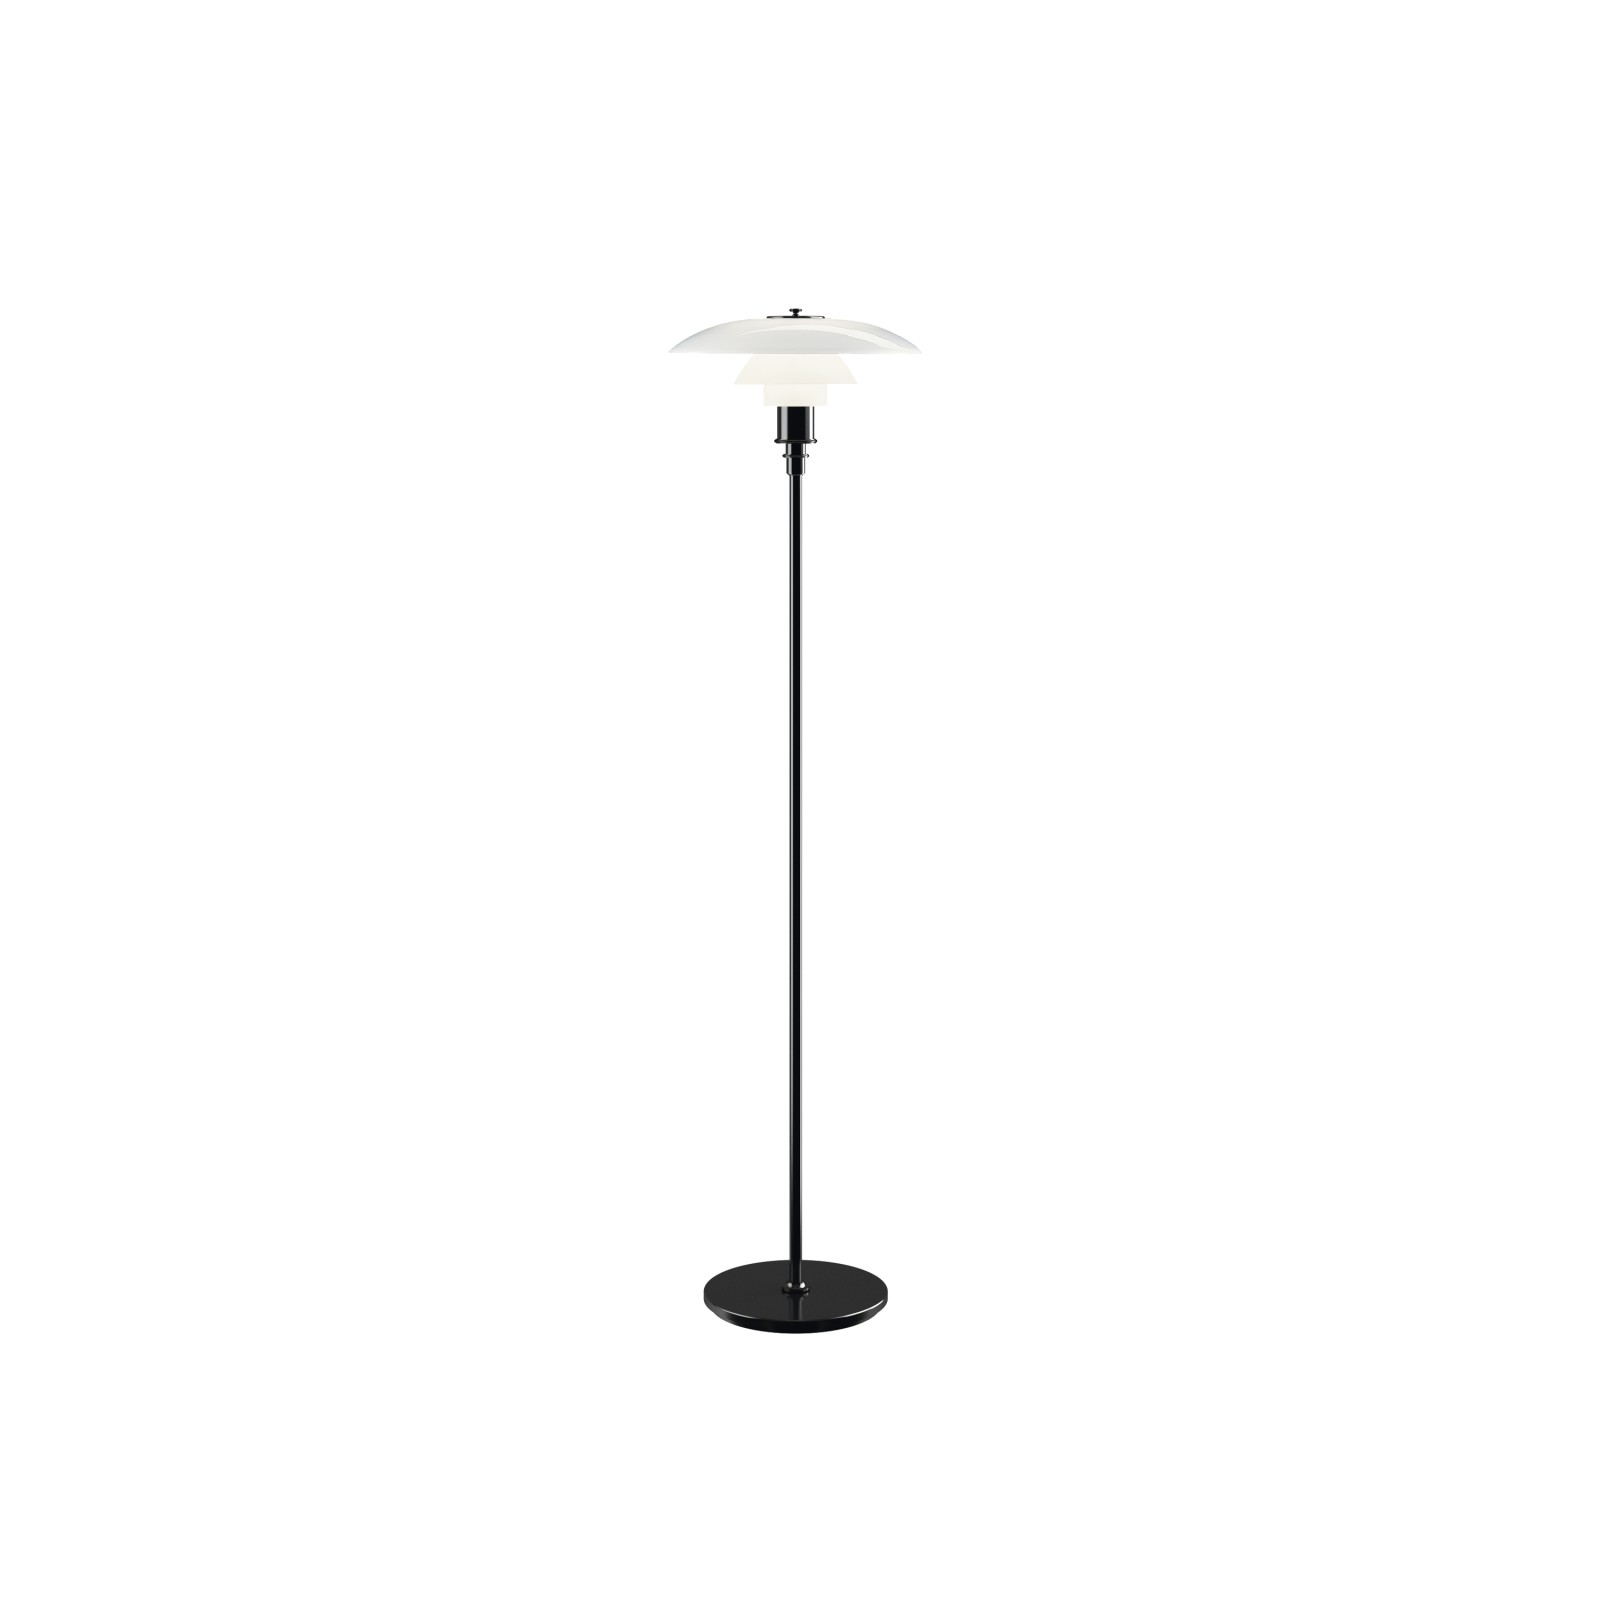 PH 3½-2½ Floor Lamp UK Plug, Black Metallised